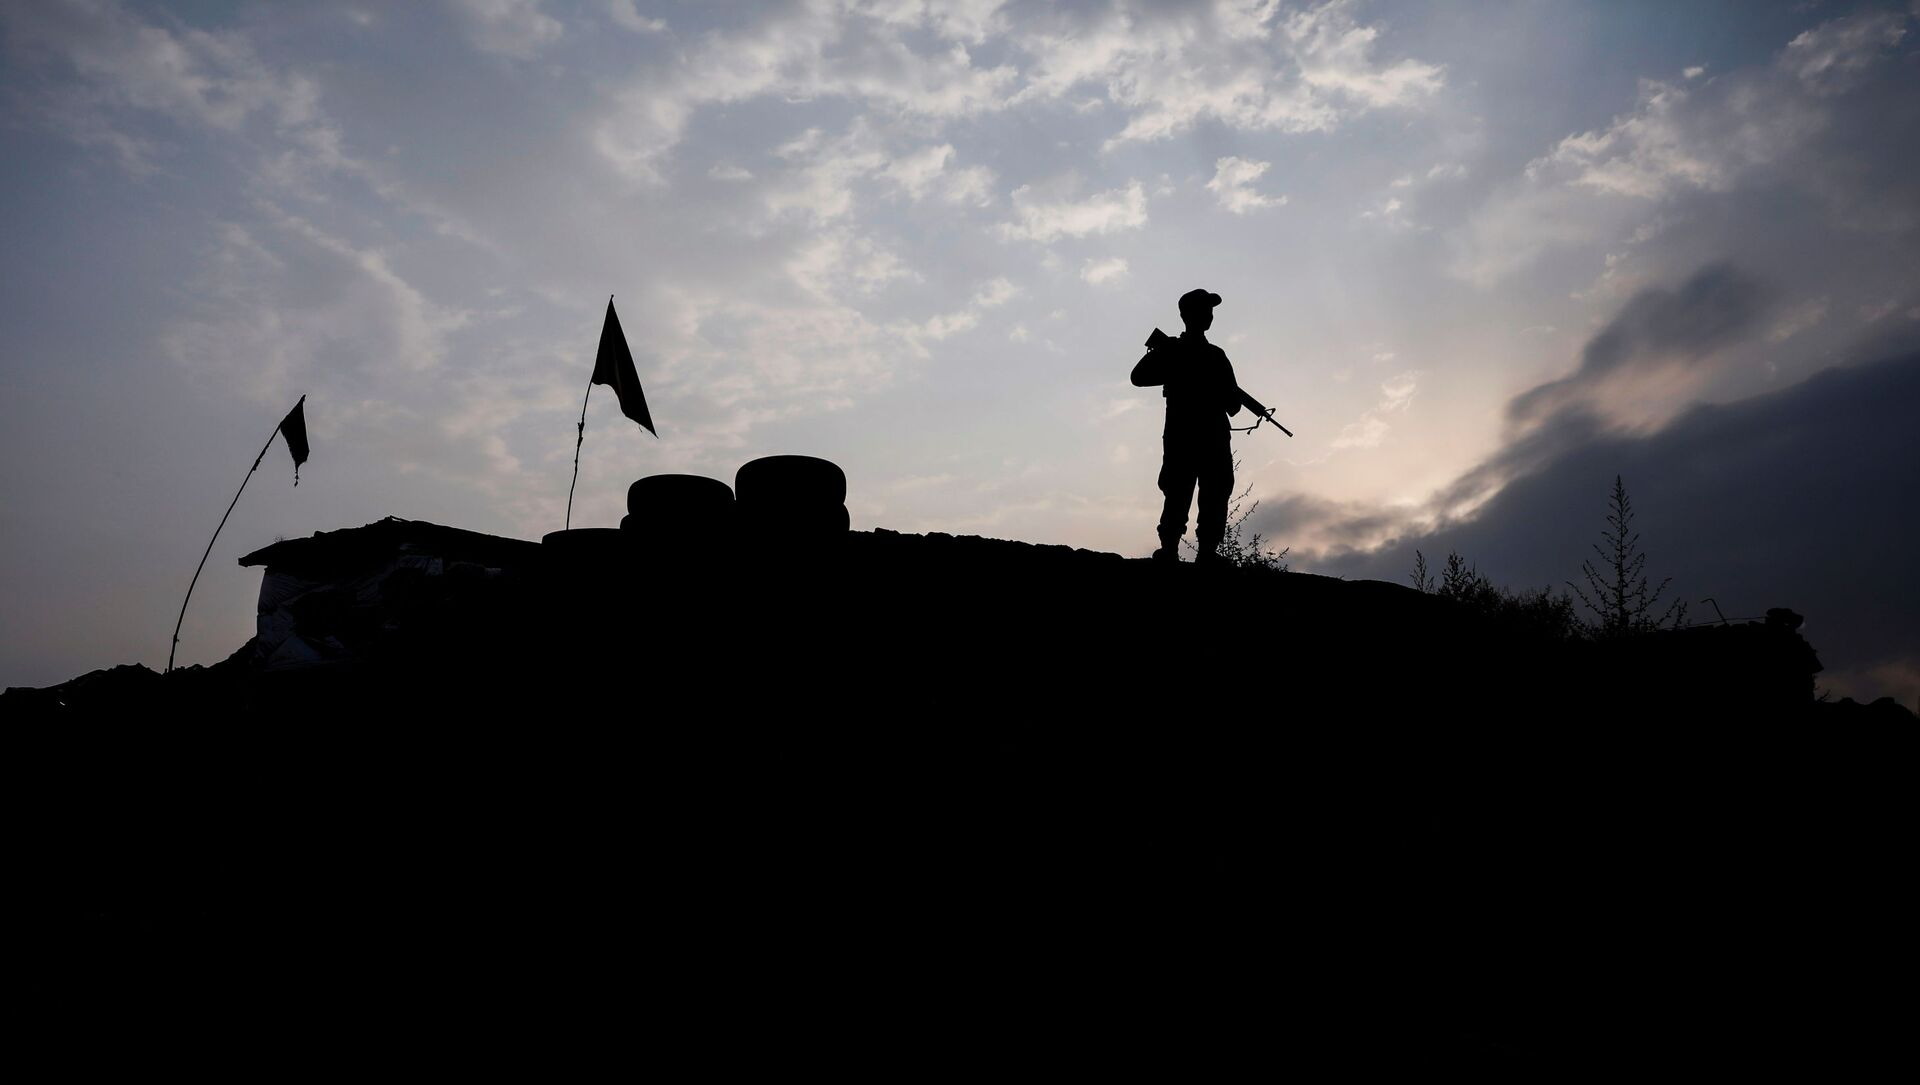 An Afghan police officer keeps watch at the check post on the outskirts of Kabul, Afghanistan July 13, 2021. - Sputnik International, 1920, 27.07.2021